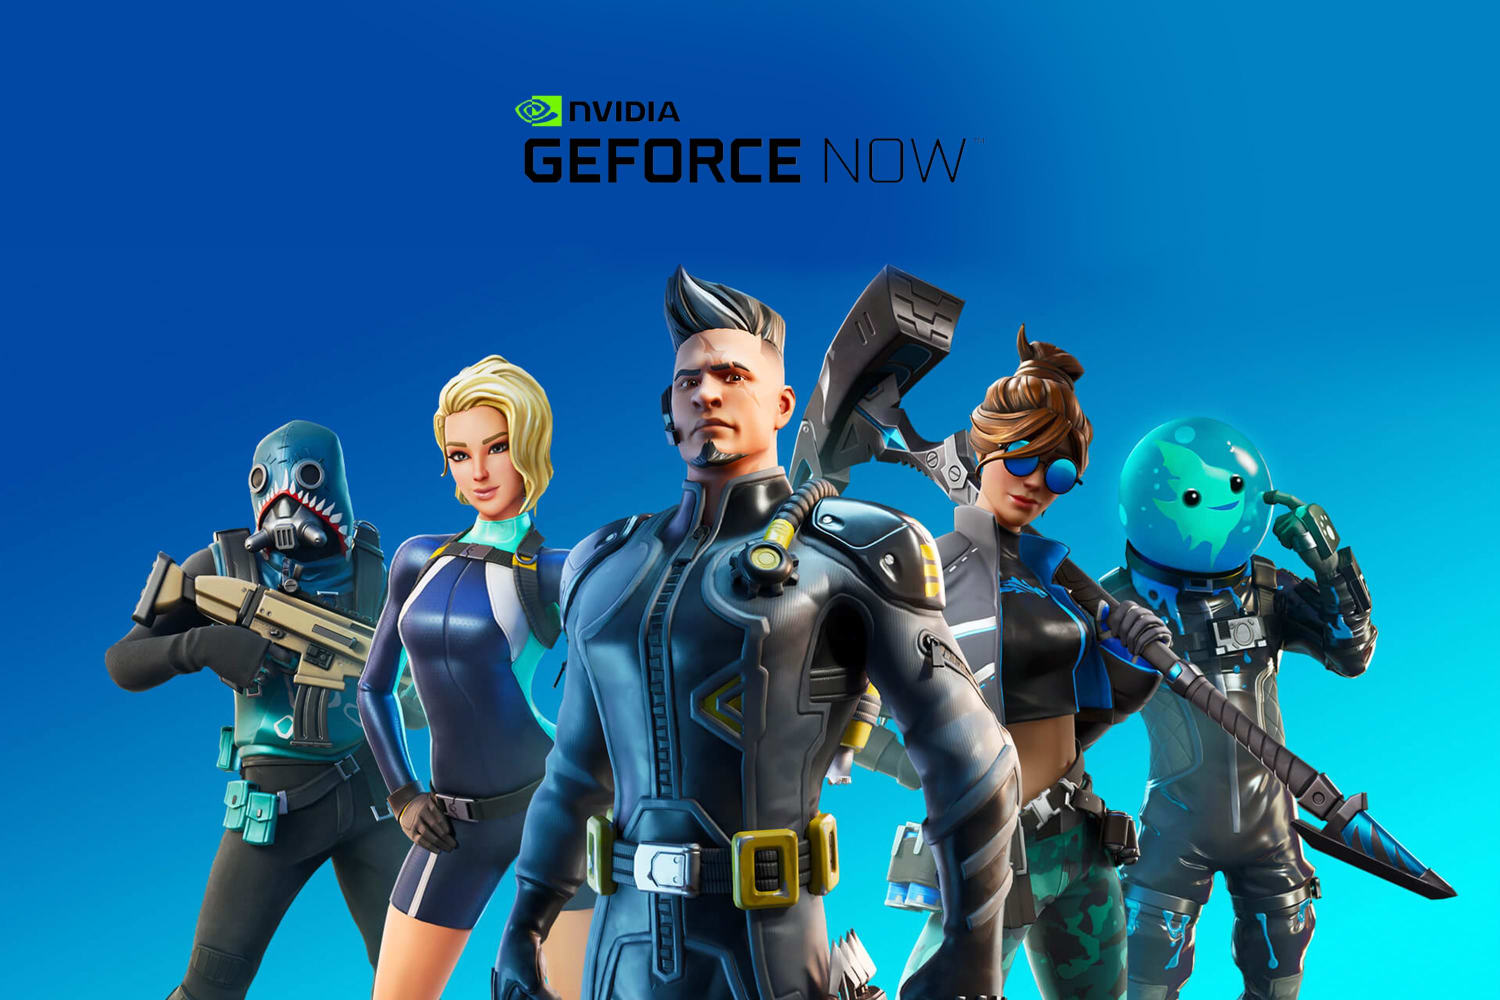 geforce-now-looks-to-bring-epic-games-fortnite-back-to-ios-devices-20201105-1